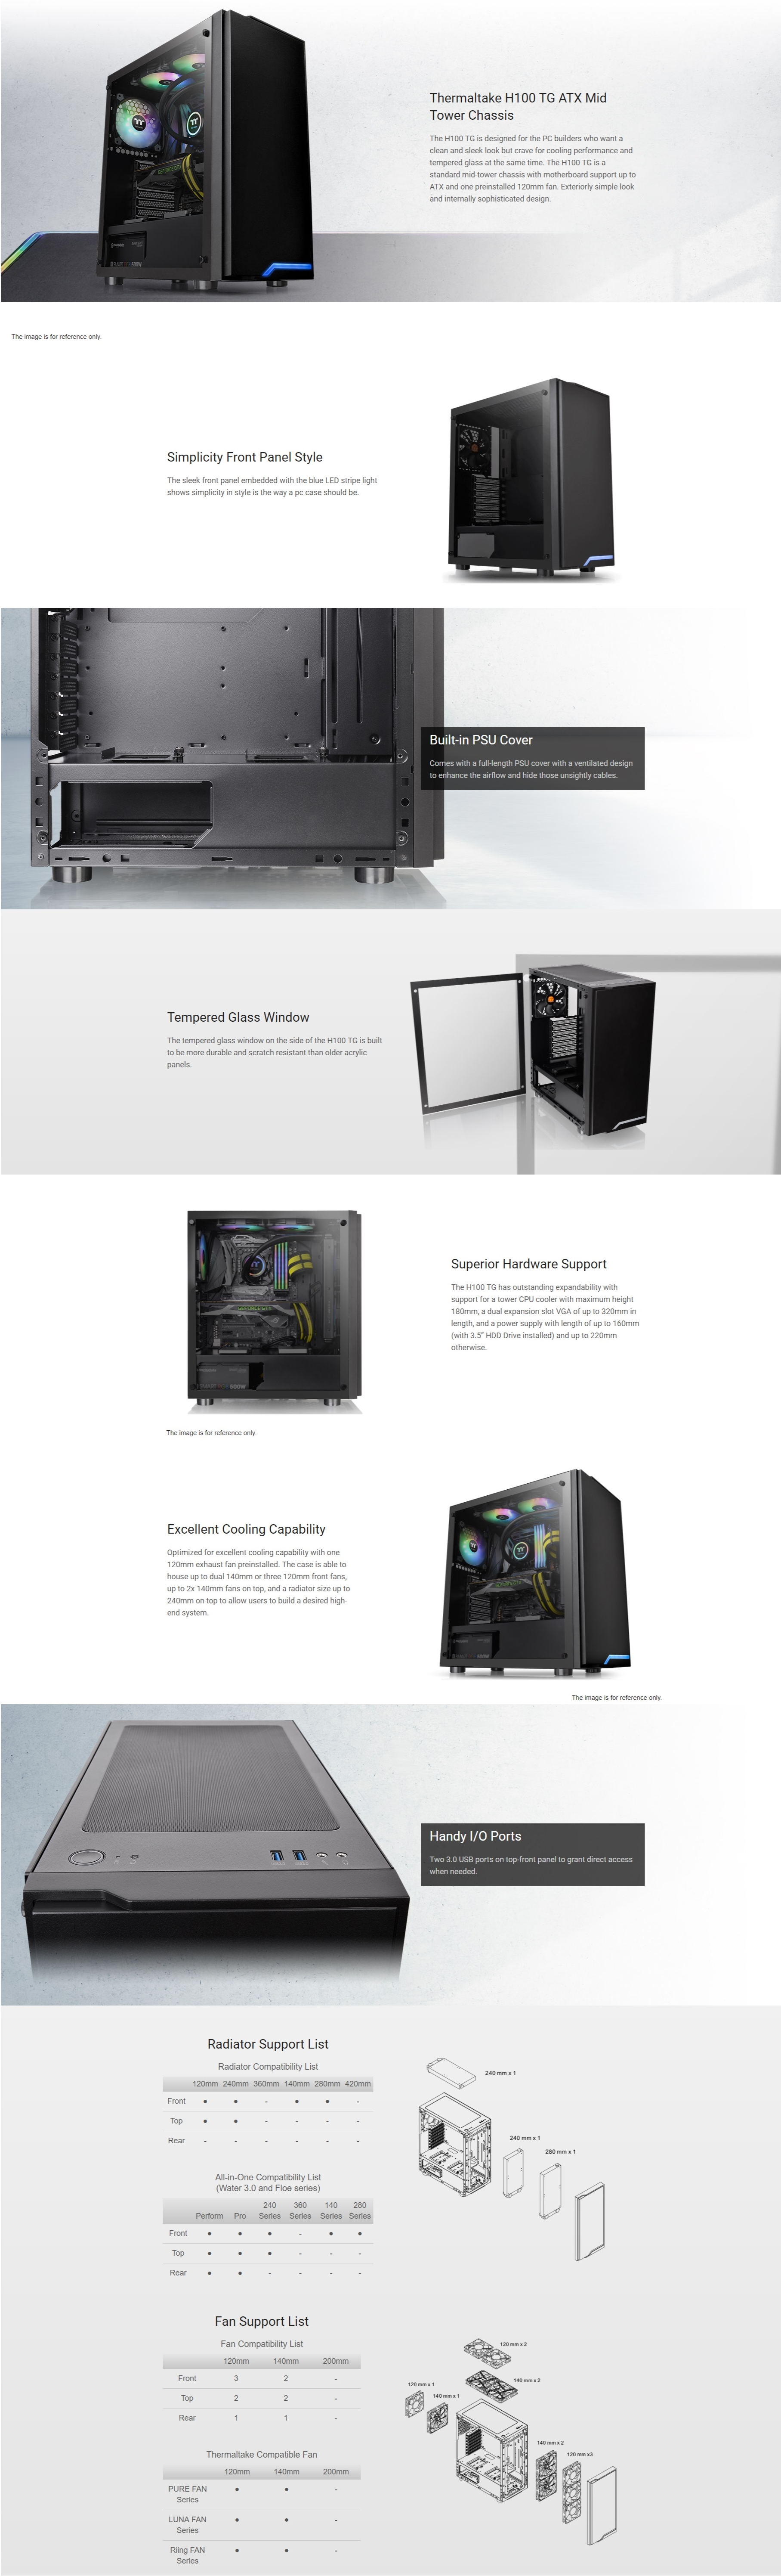 A large marketing image providing additional information about the product Thermaltake H100 Mid Tower Case w/ Tempered Glass Side Panel - Additional alt info not provided